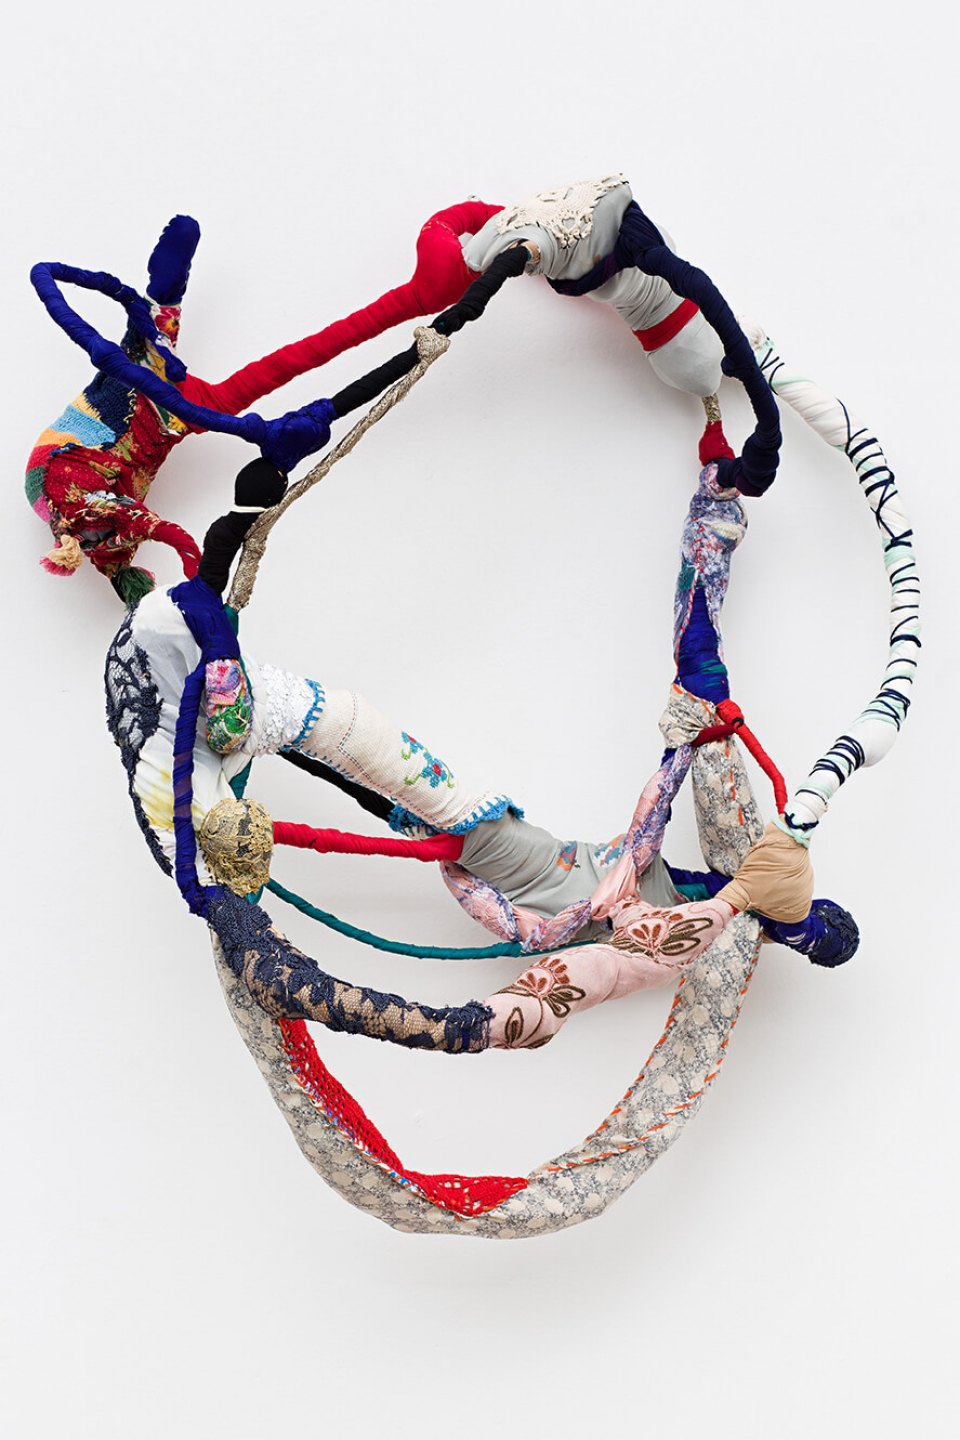 Sonia Gomes, <em>Trapézio, from Torção series</em>, 2014, sewing, binding, different fabric on wire, 90 × 75 × 40 cm - Mendes Wood DM